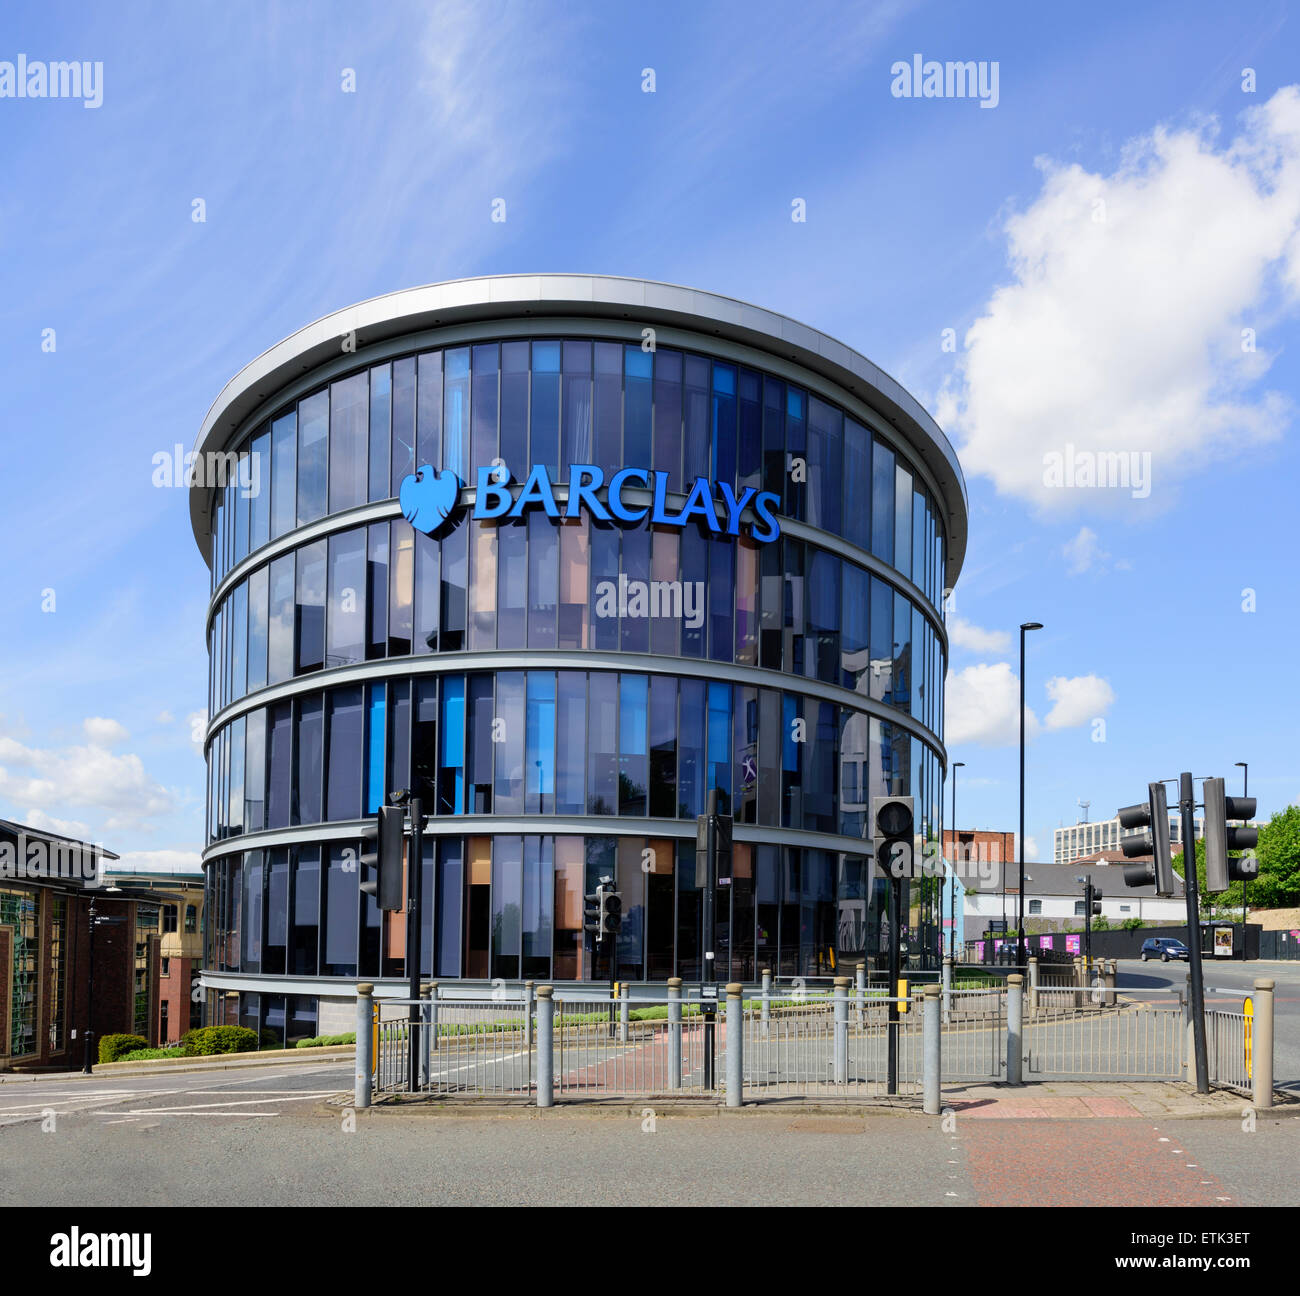 Barclays Corporate Banking Building Photo Stock